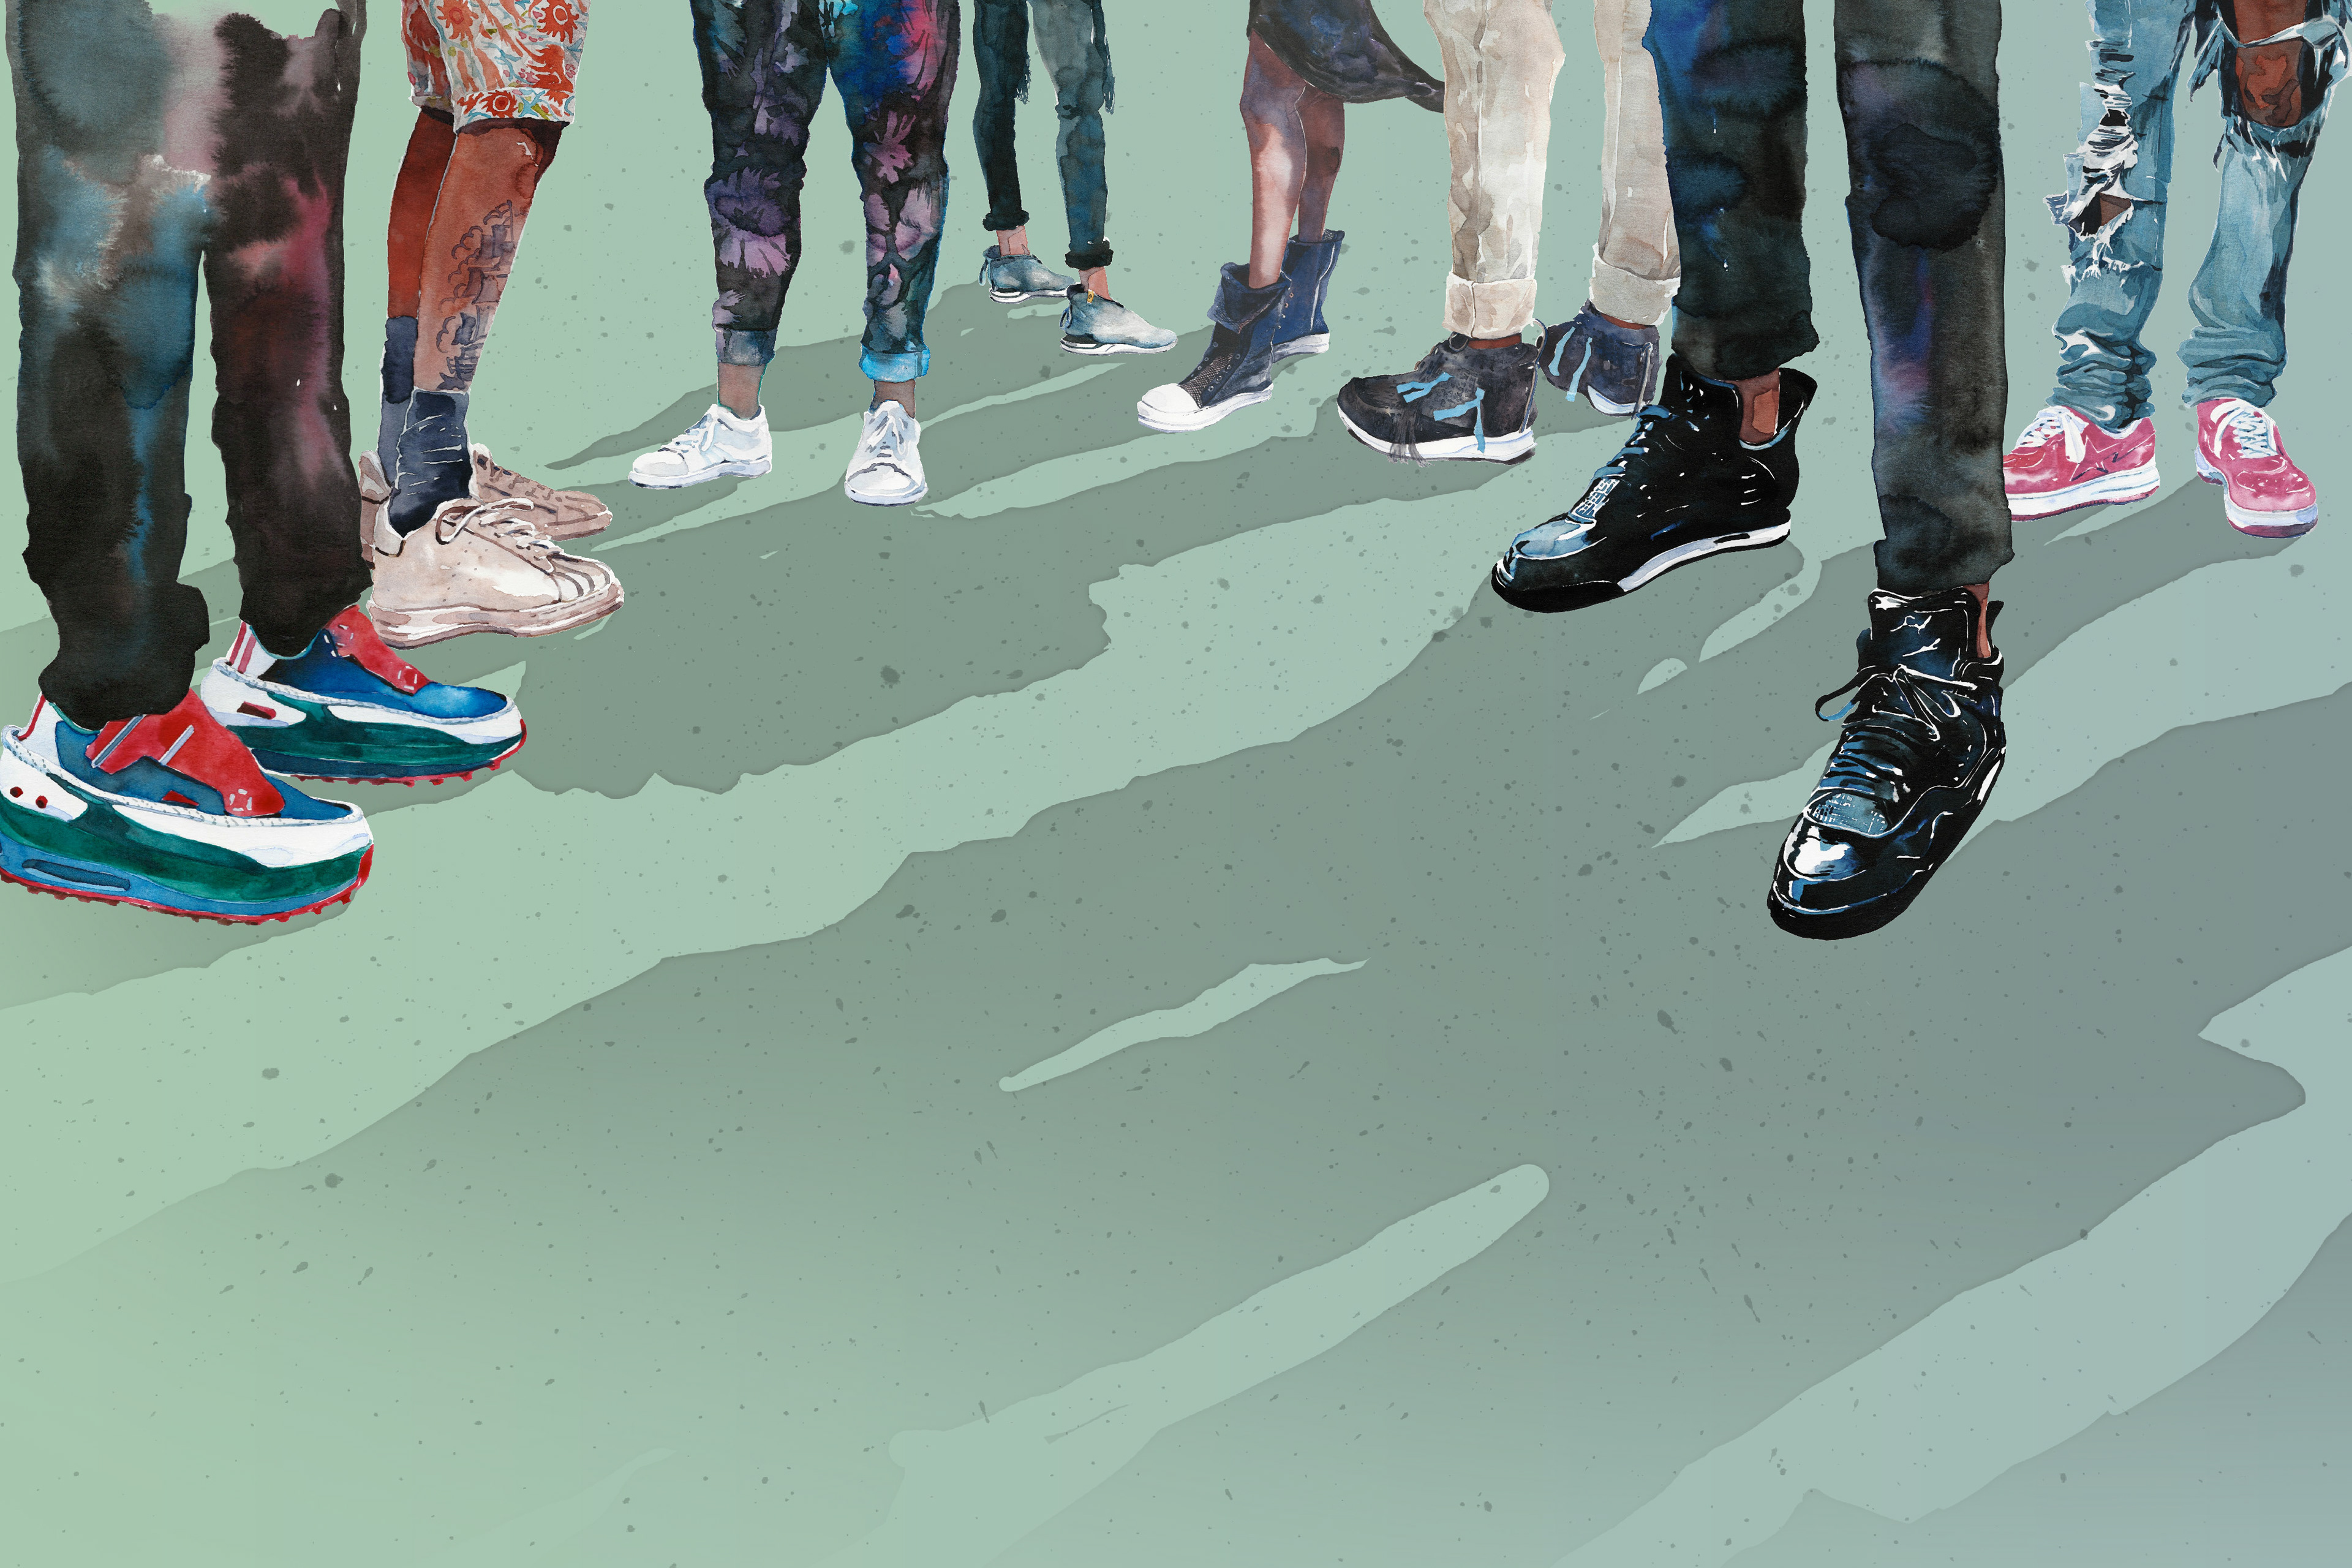 78a8f804d5c88b Yiche Feng - Highsnobiety  2016 S S Best Sneakers Illustrated